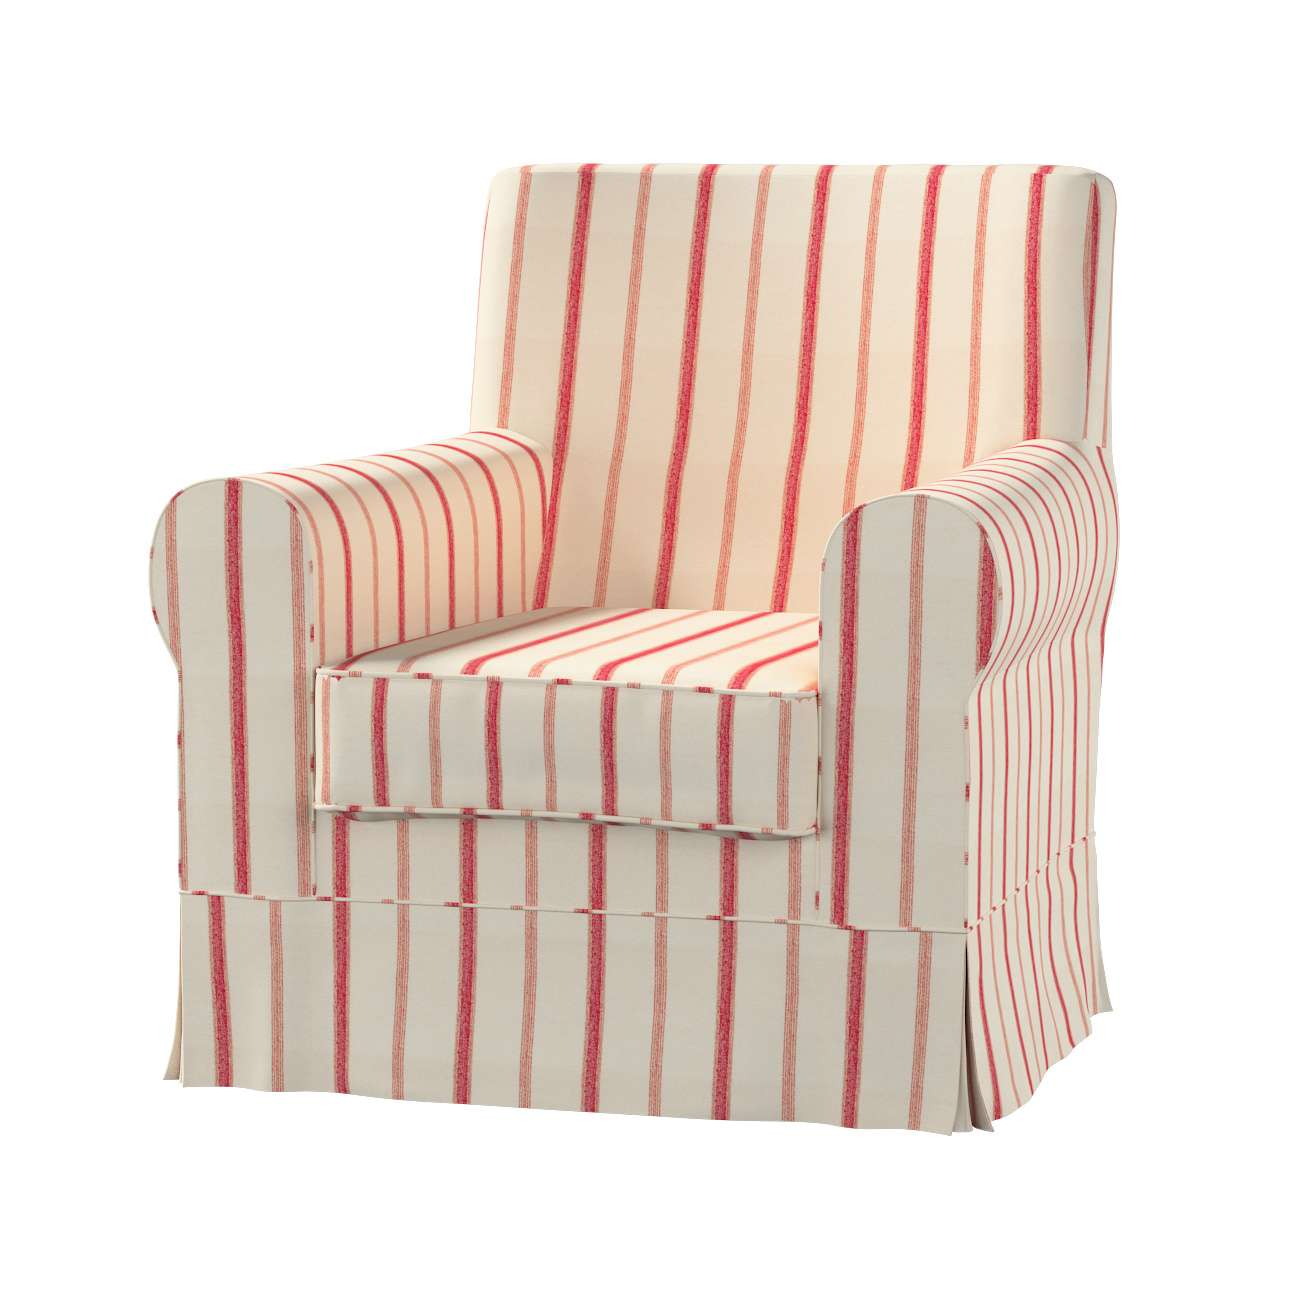 ikea jennylund chair covers uk swivel club chairs upholstered ektorp armchair cover red stripes ivory background